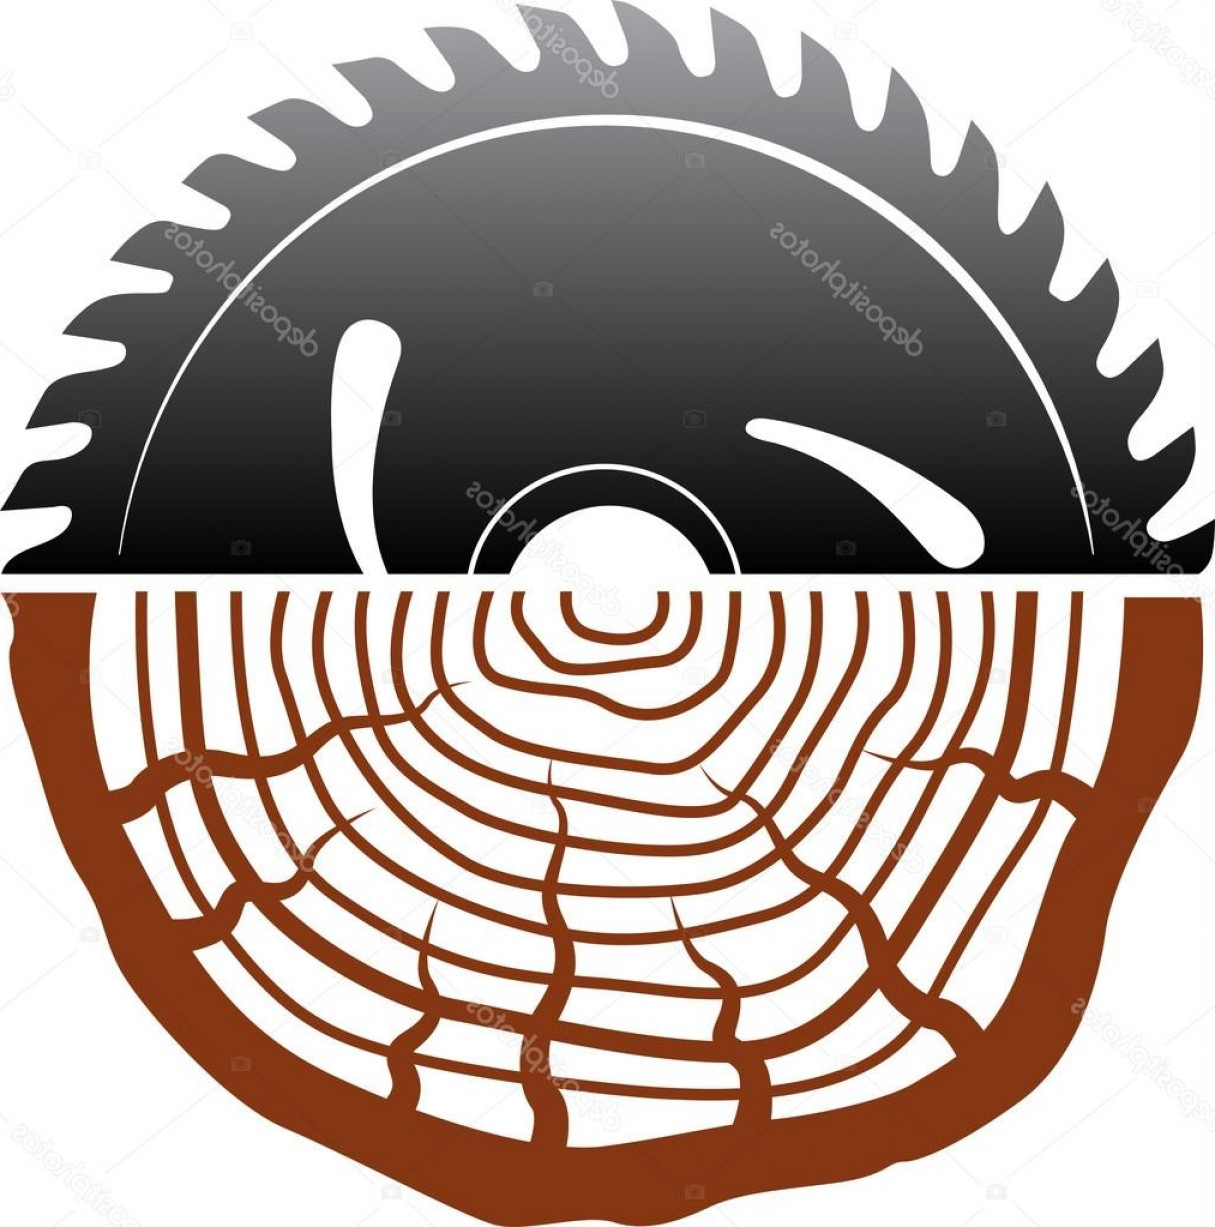 Wood Cutting Vector: Stock Illustration Wood Cutting Logo Design